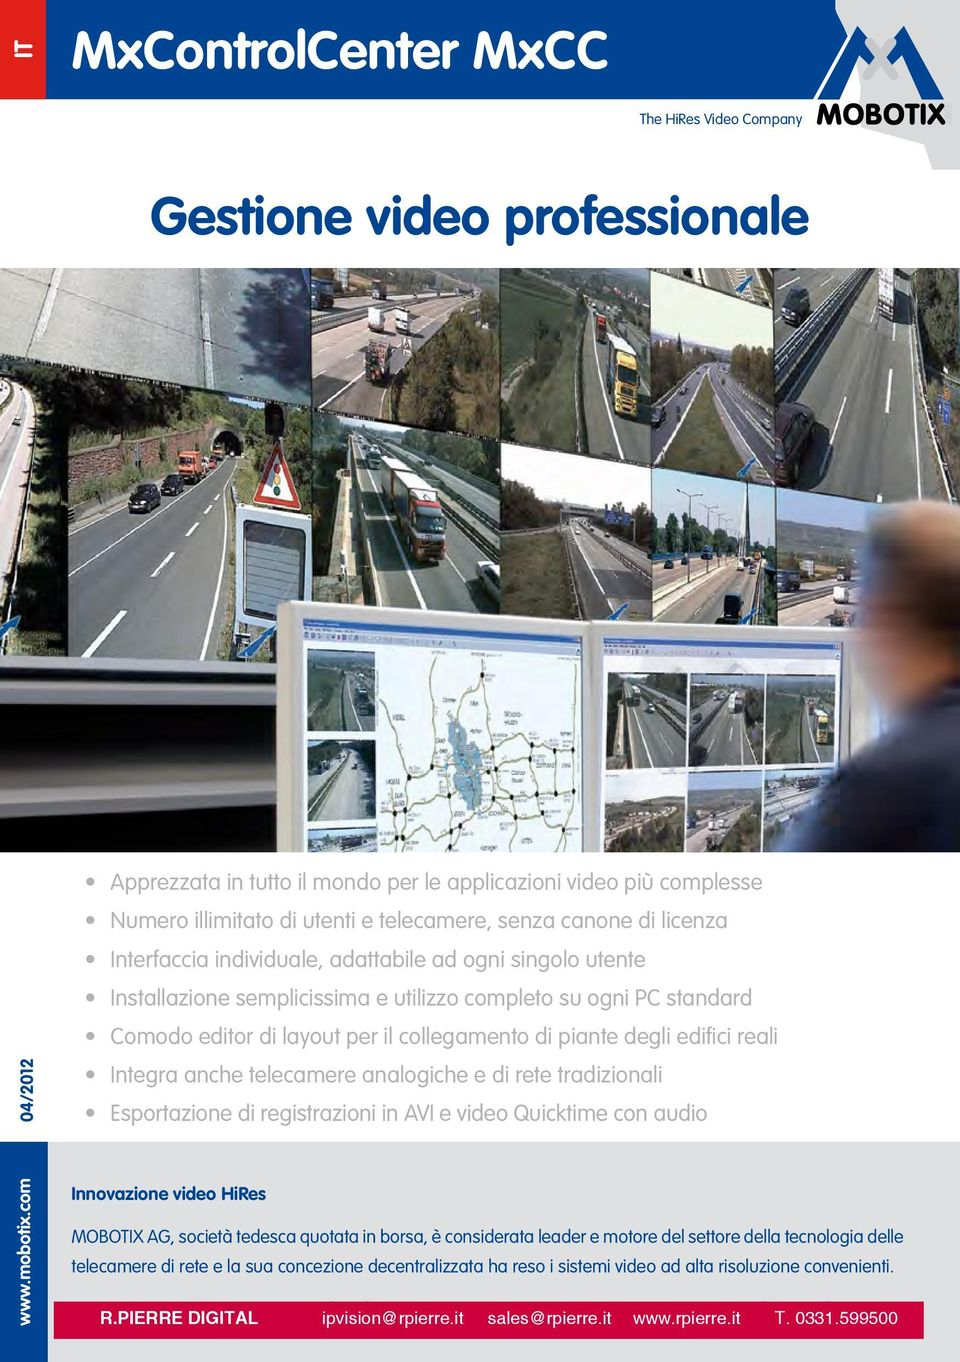 piante degli edifici reali Integra anche telecamere analogiche e di rete tradizionali Esportazione di registrazioni in AVI e video Quicktime con audio Innovazione video HiRes MOBOTIX AG, società